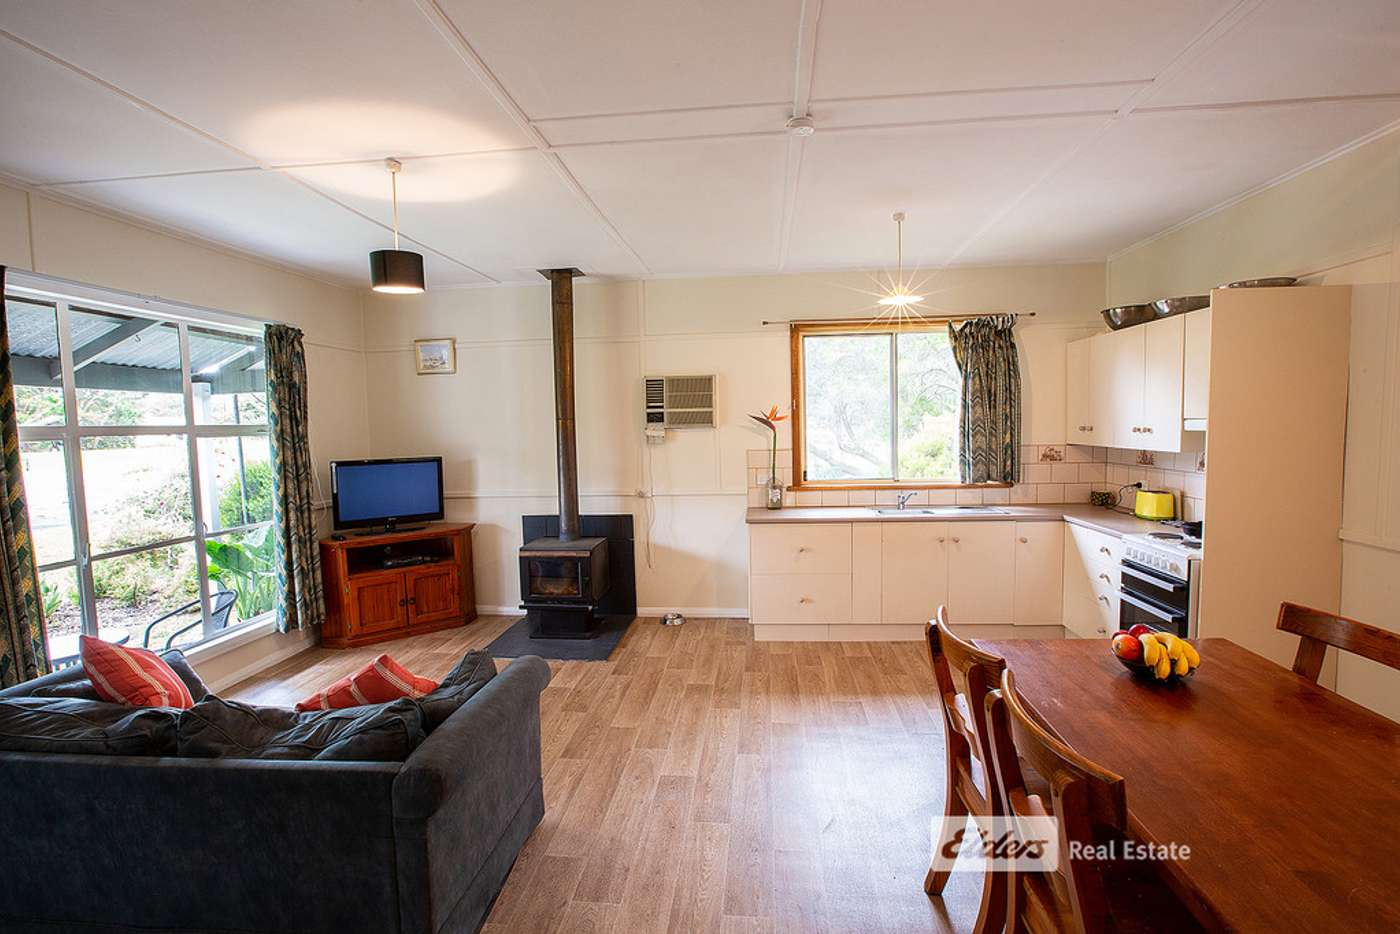 Sixth view of Homely house listing, 1 WATSON AVENUE, Lucindale SA 5272